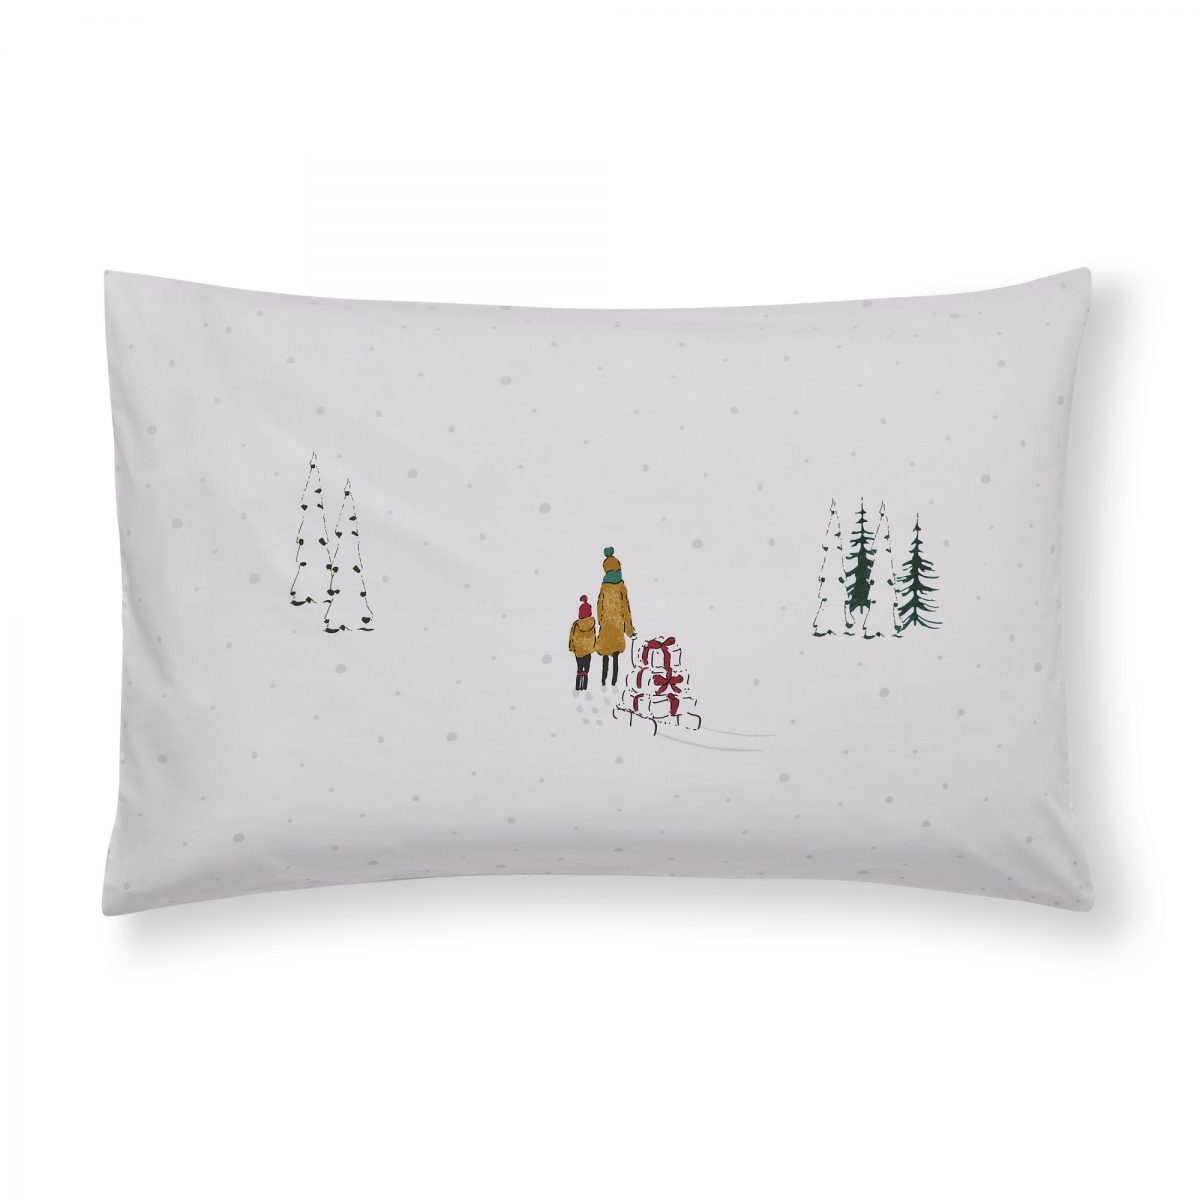 Home For Christmas Pillowcase Cut Out email